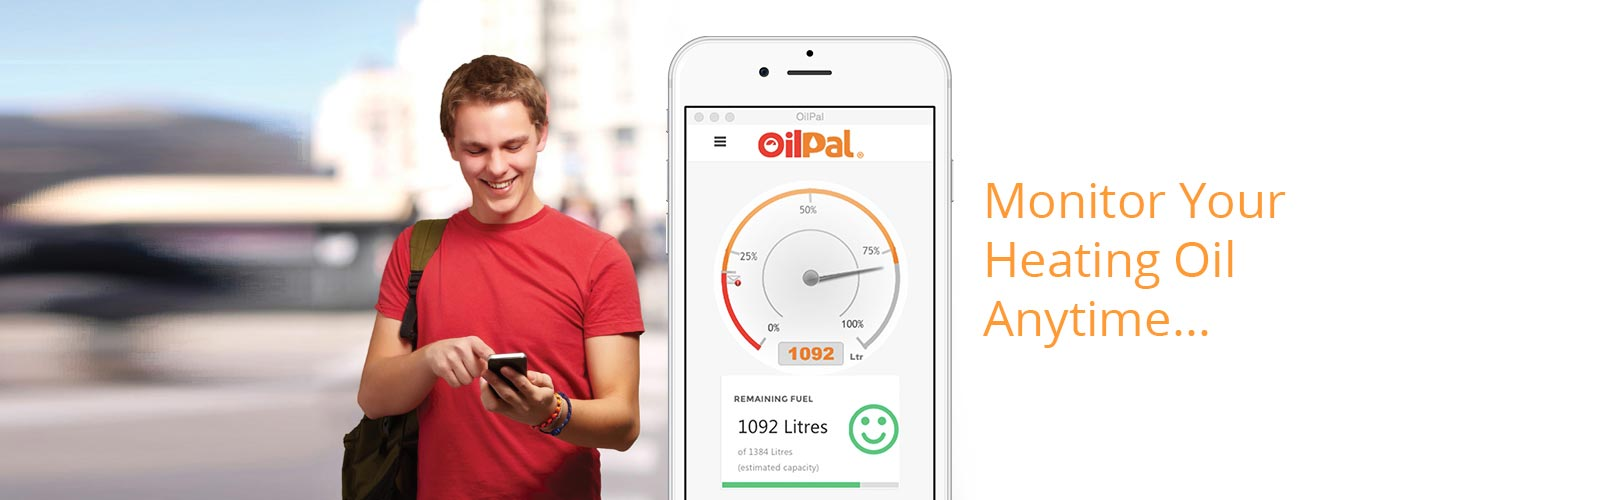 .oilpal-monitor-your-heating-oil-anywhere